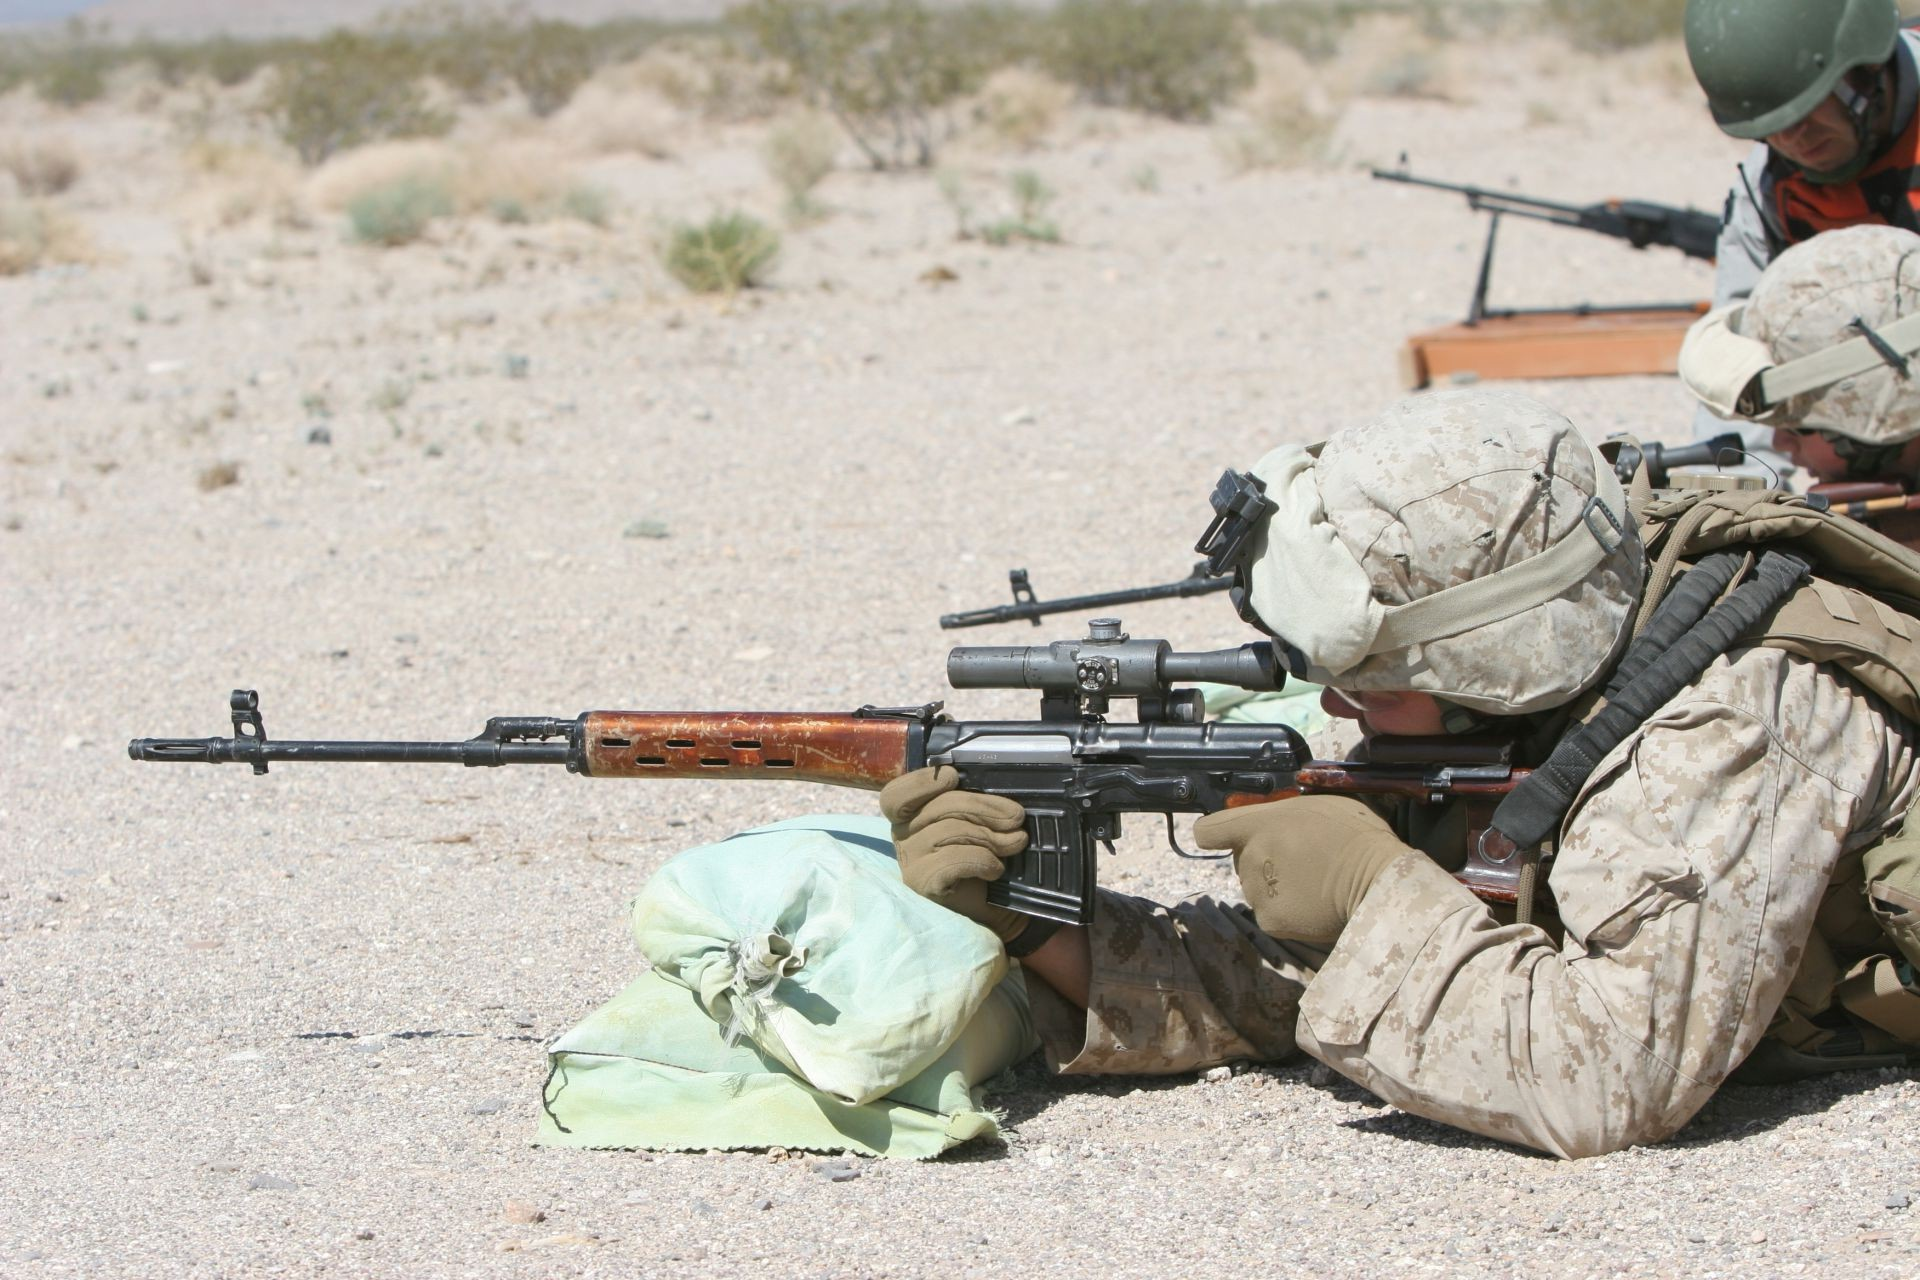 SVD of the American marine shooting